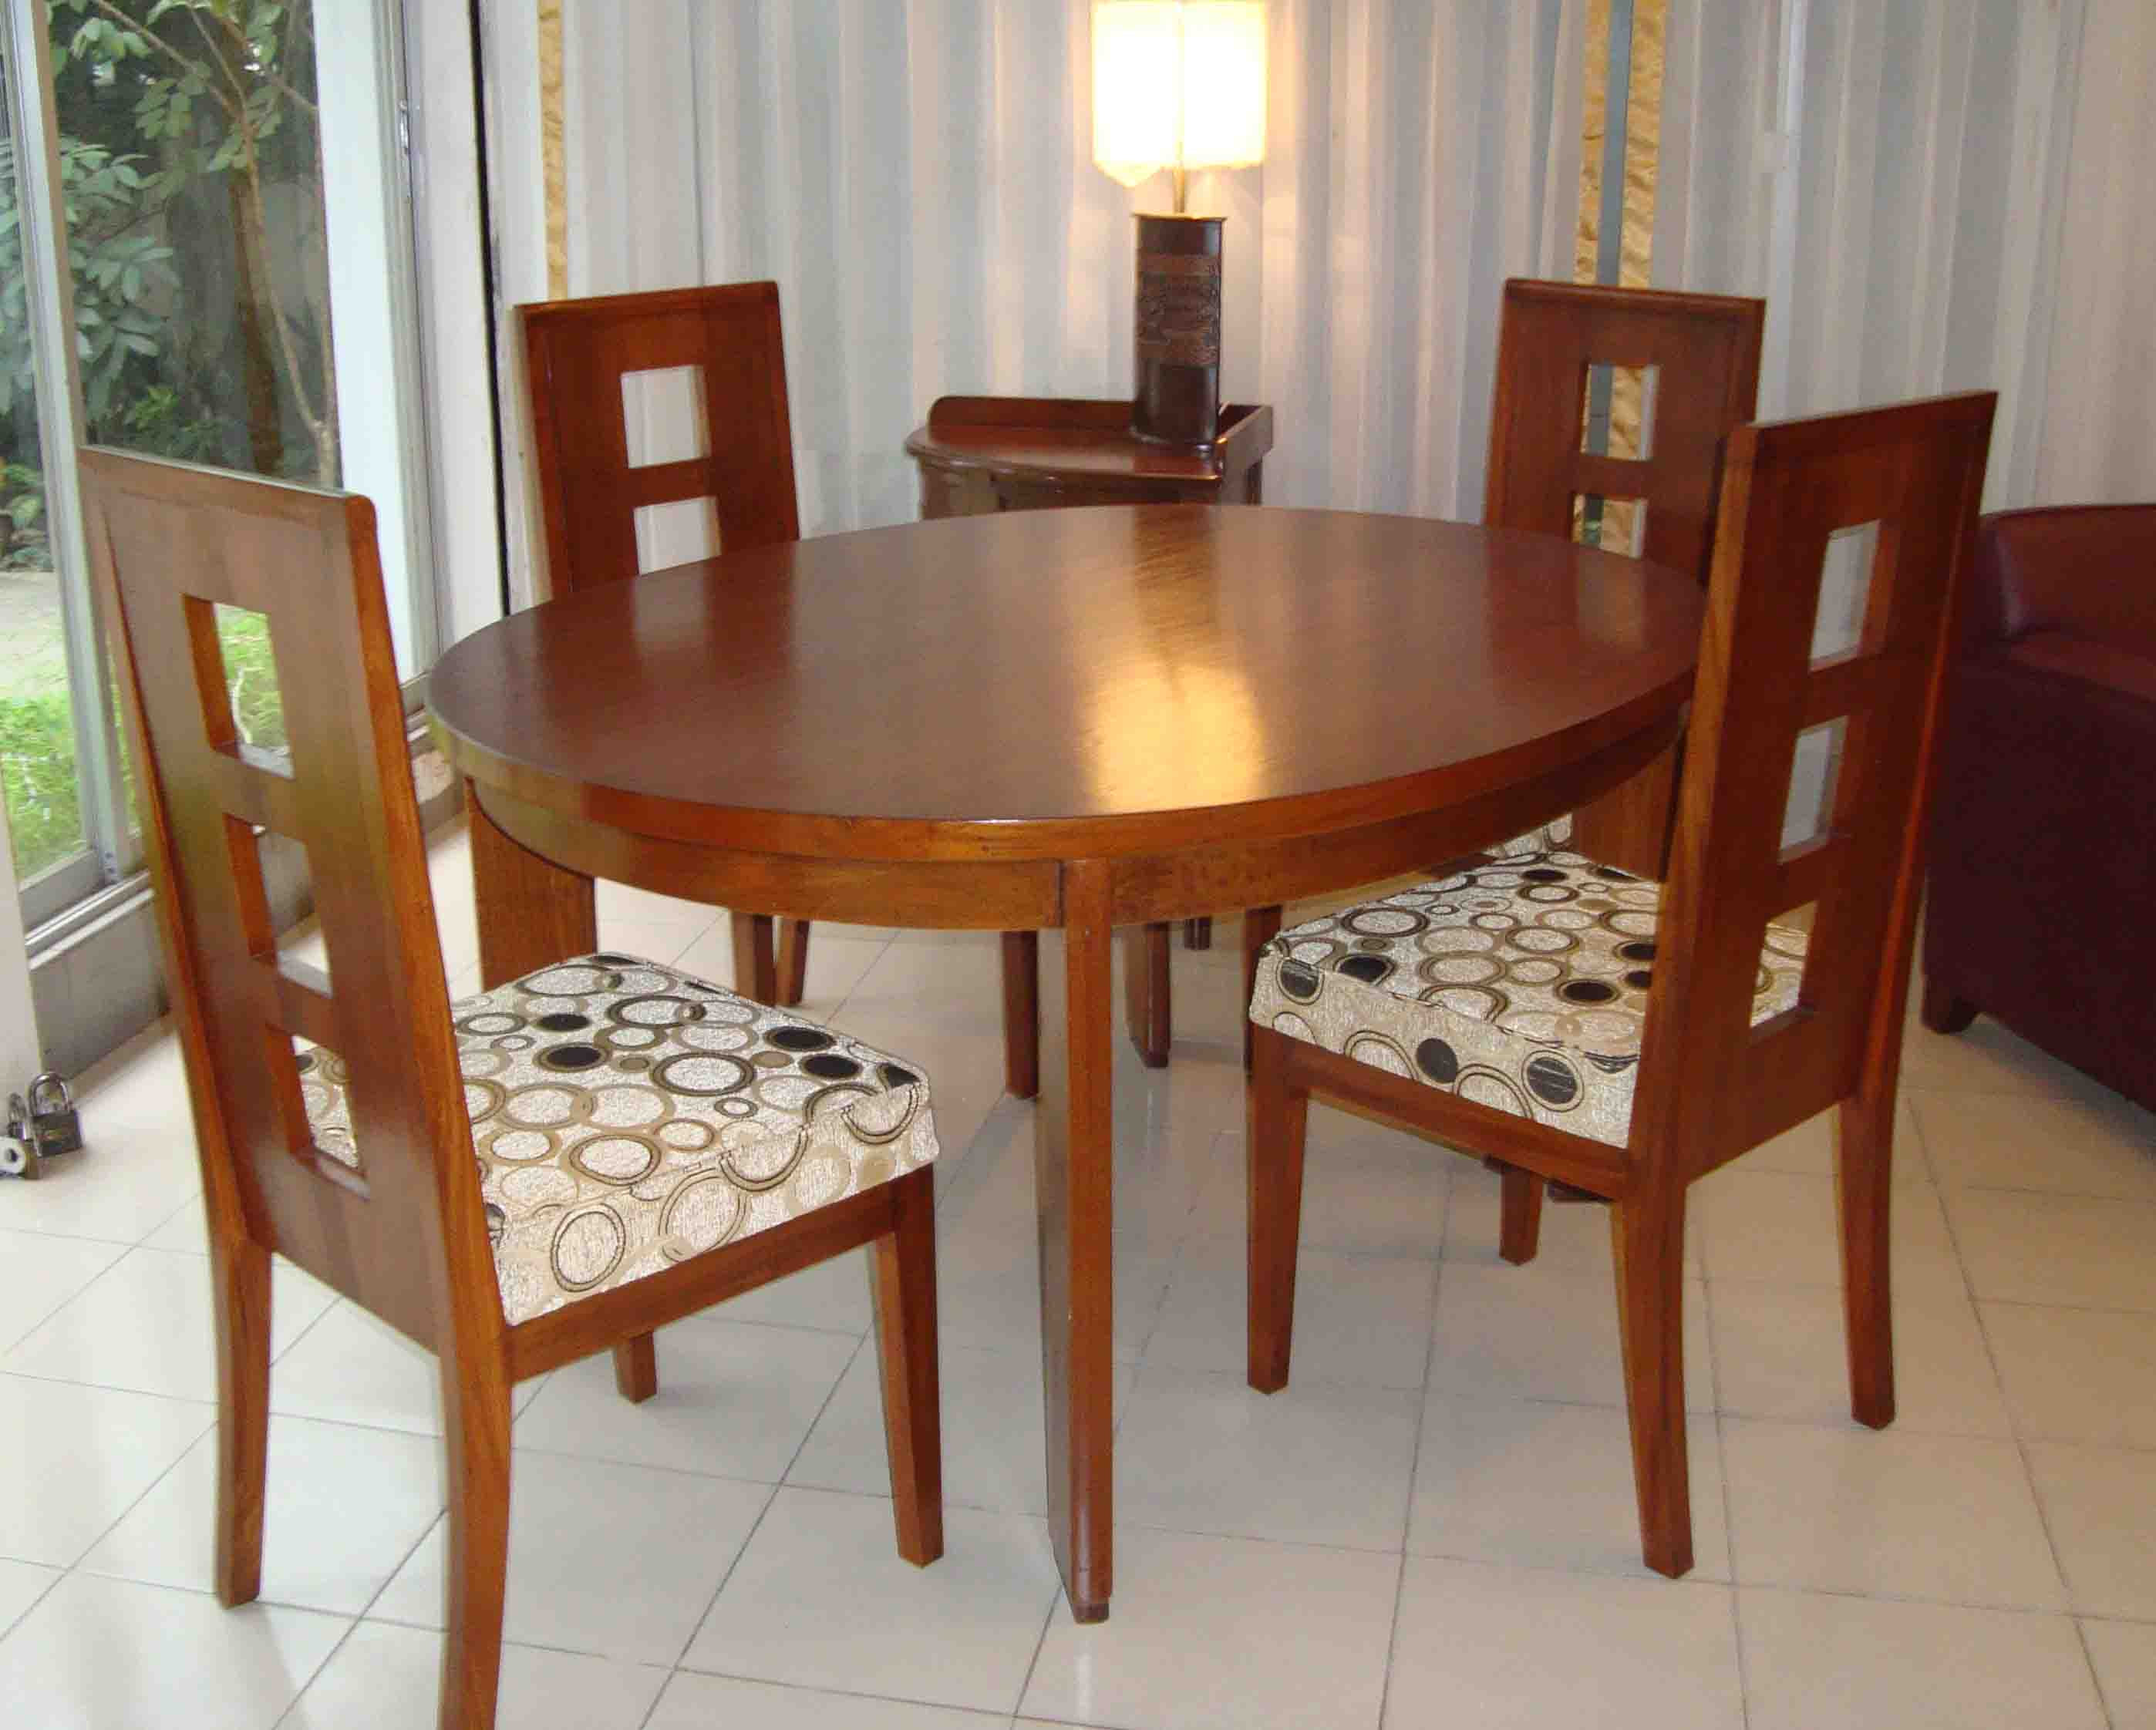 4 chairs in living room white gloss units nza dining table with made of solid wood clickbd